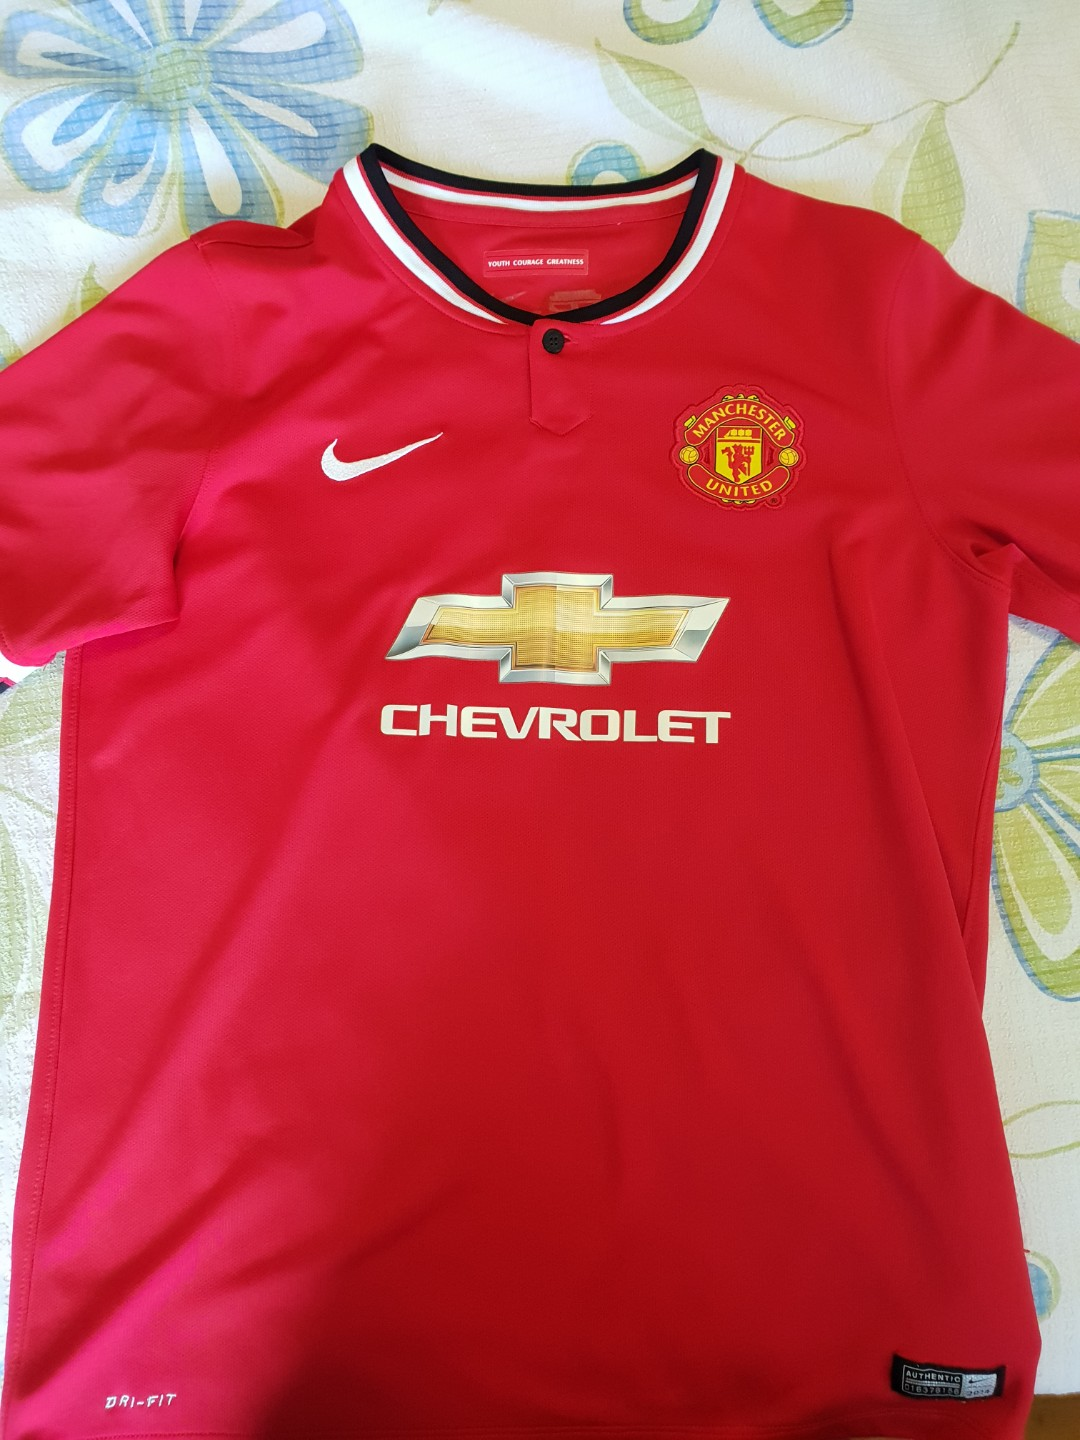 ed2766a9e91 AUTHENTIC Manchester United 14/15 Home jersey, Sports, Sports ...